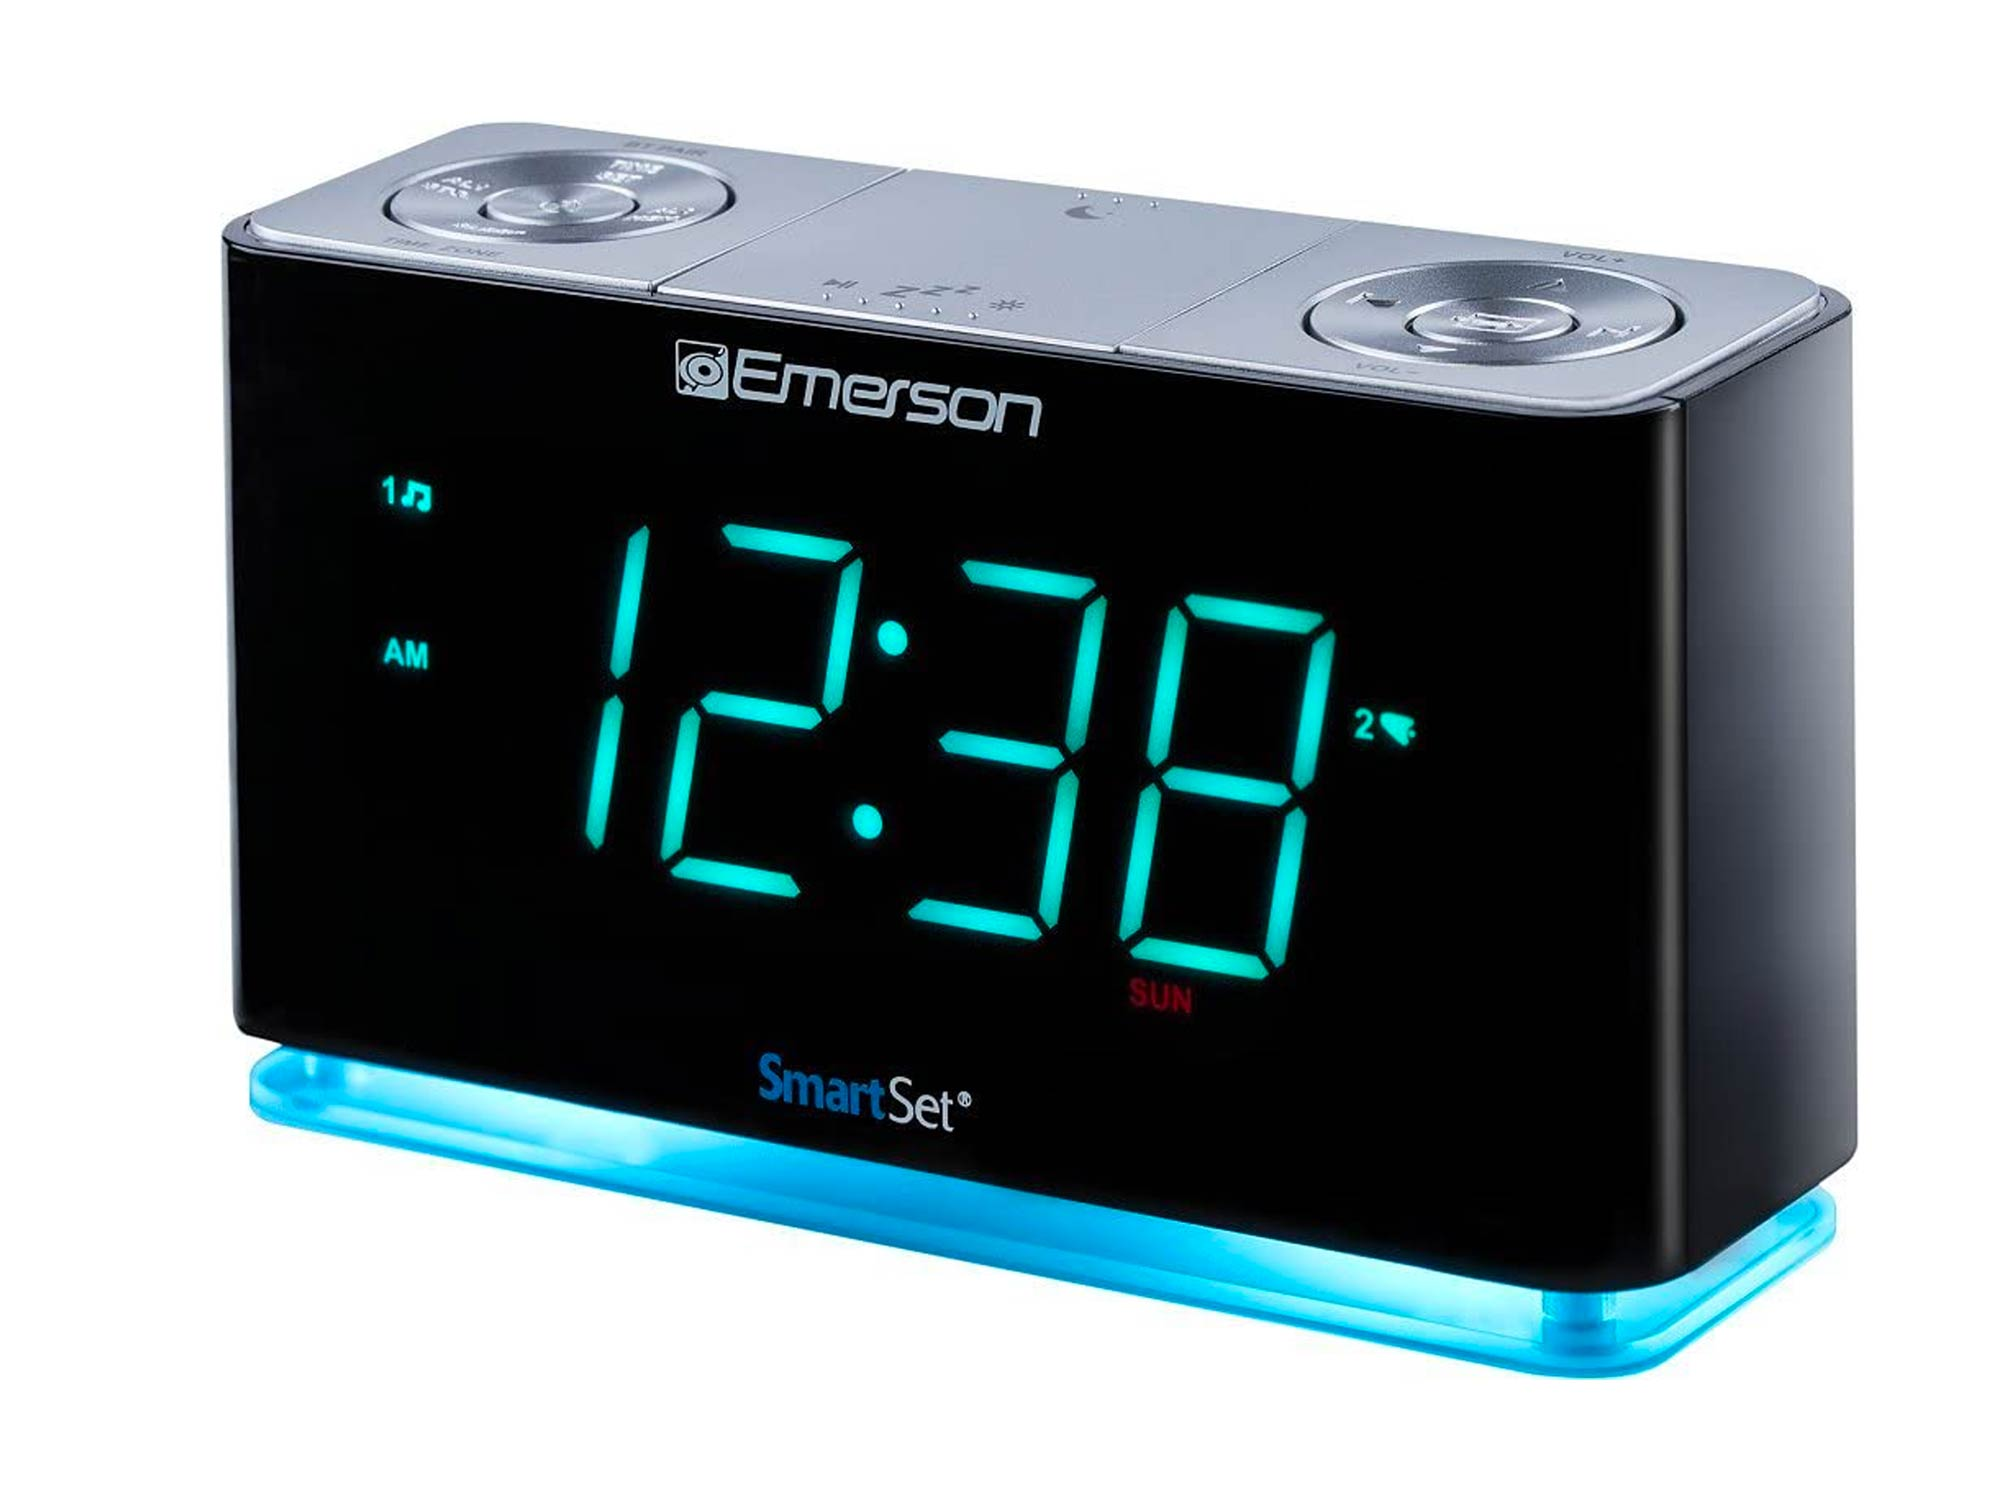 Emerson SmartSet Alarm Clock Radio with Bluetooth Speaker, Charging Station/Phone Chargers with USB port for iPhone/iPad/iPod/Android and Tablets